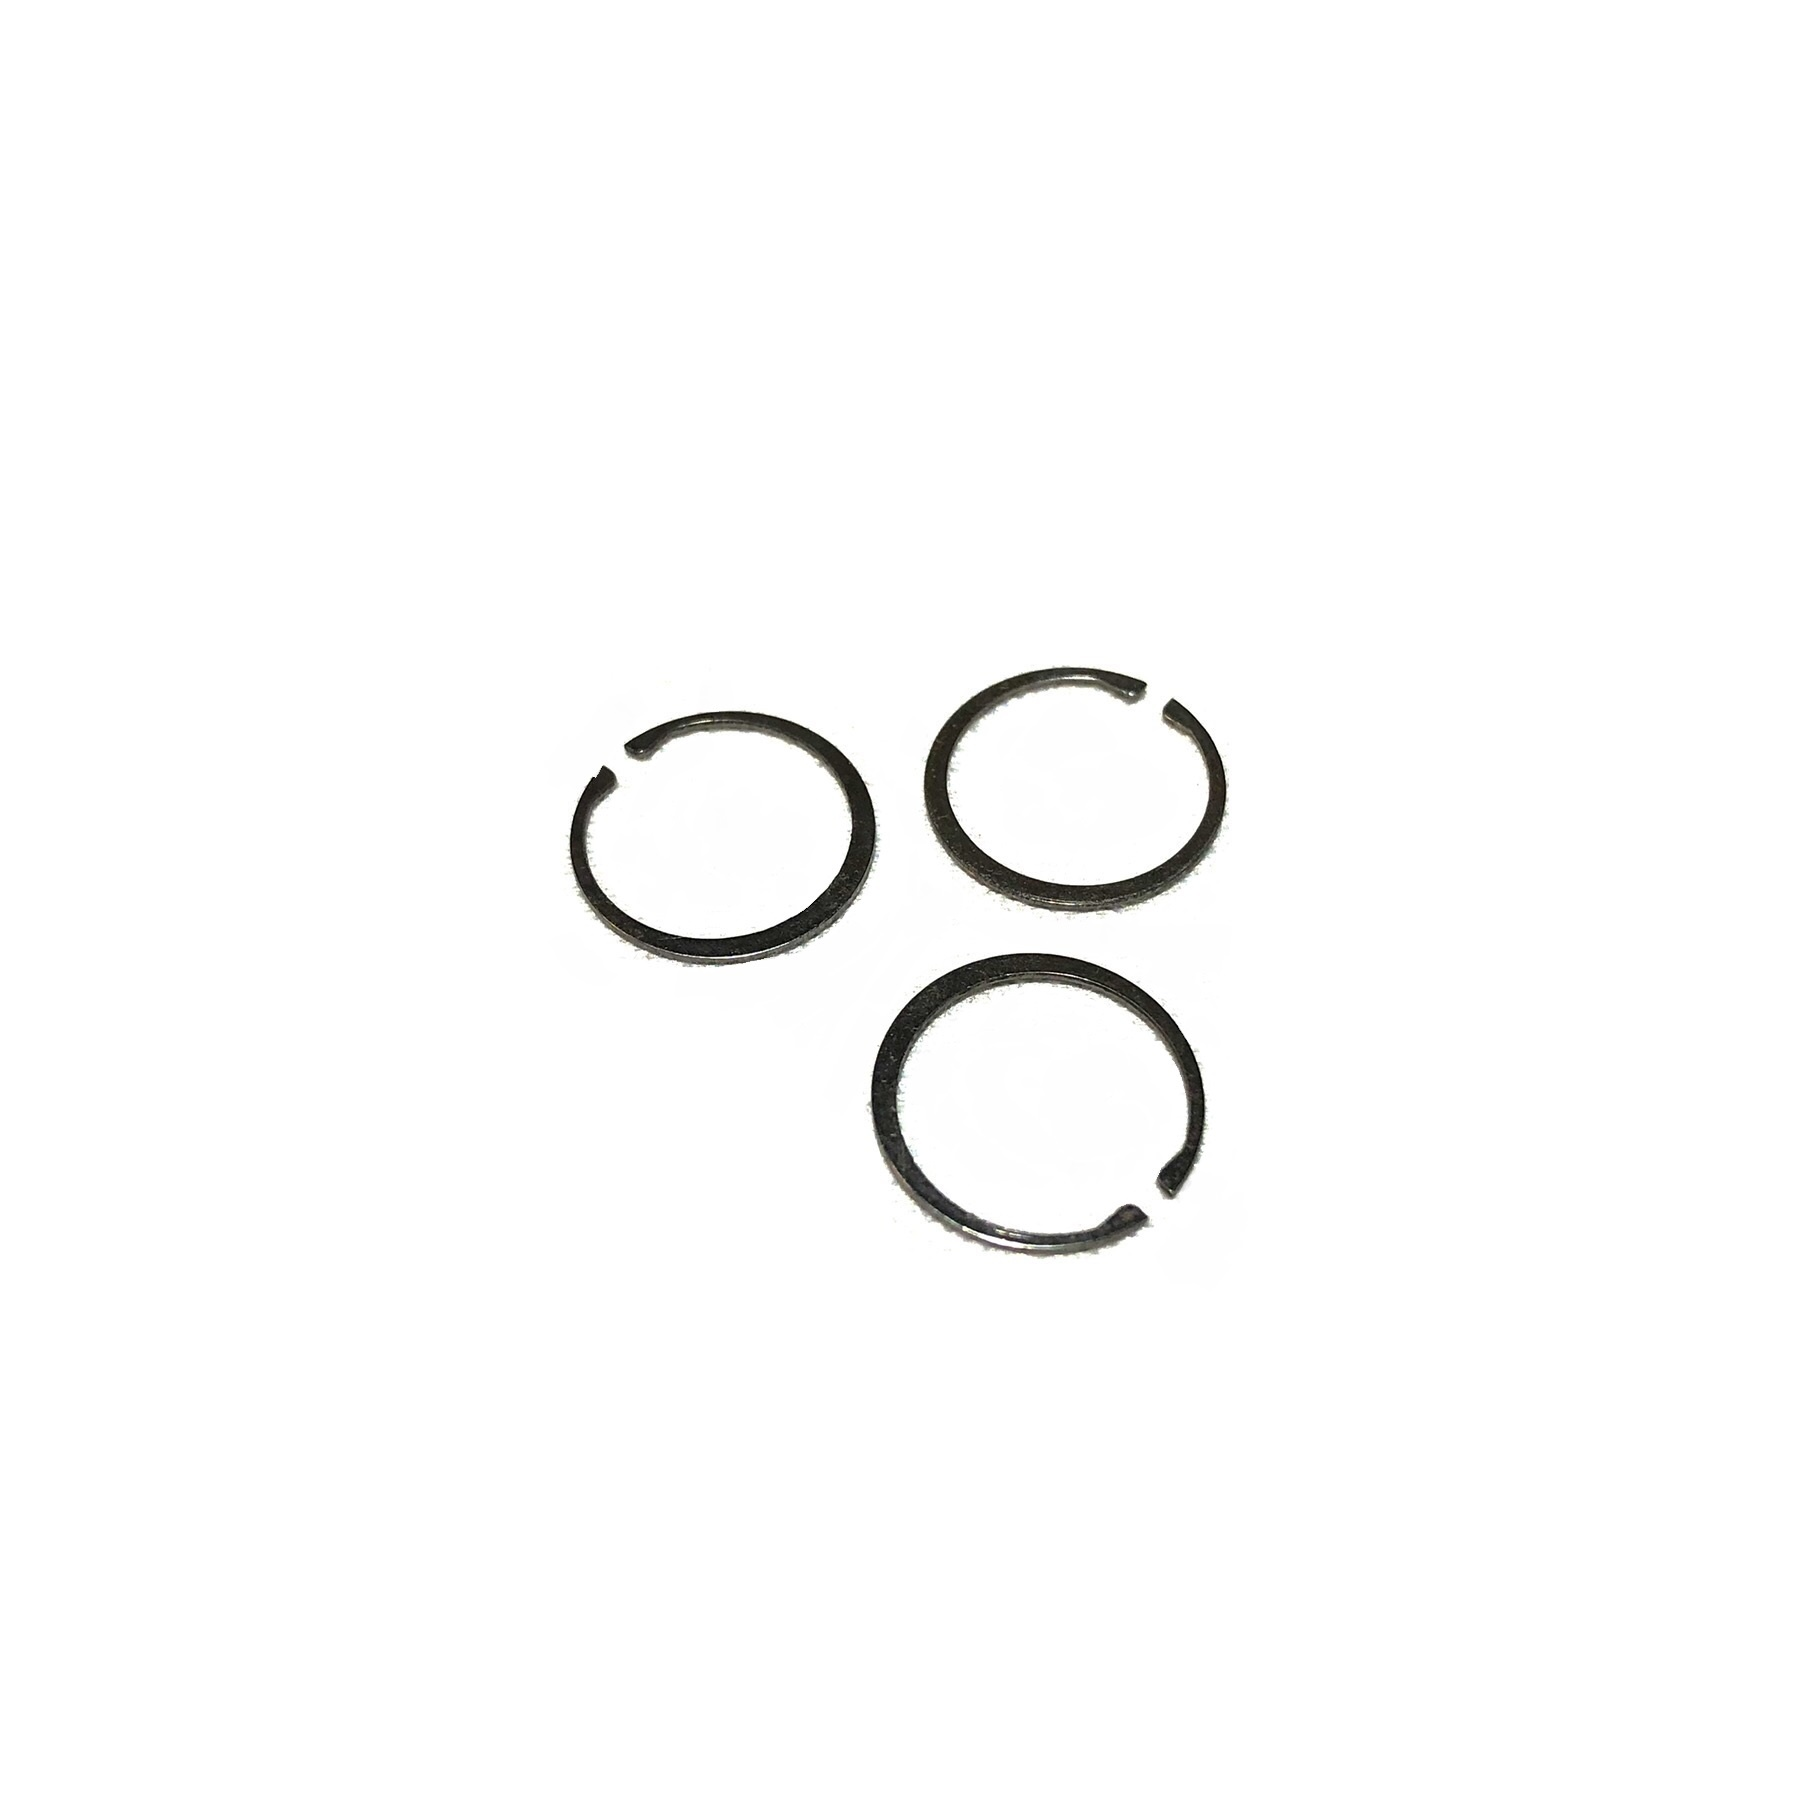 BLACK MARKET FIREARMS GAS RINGS (3pk)